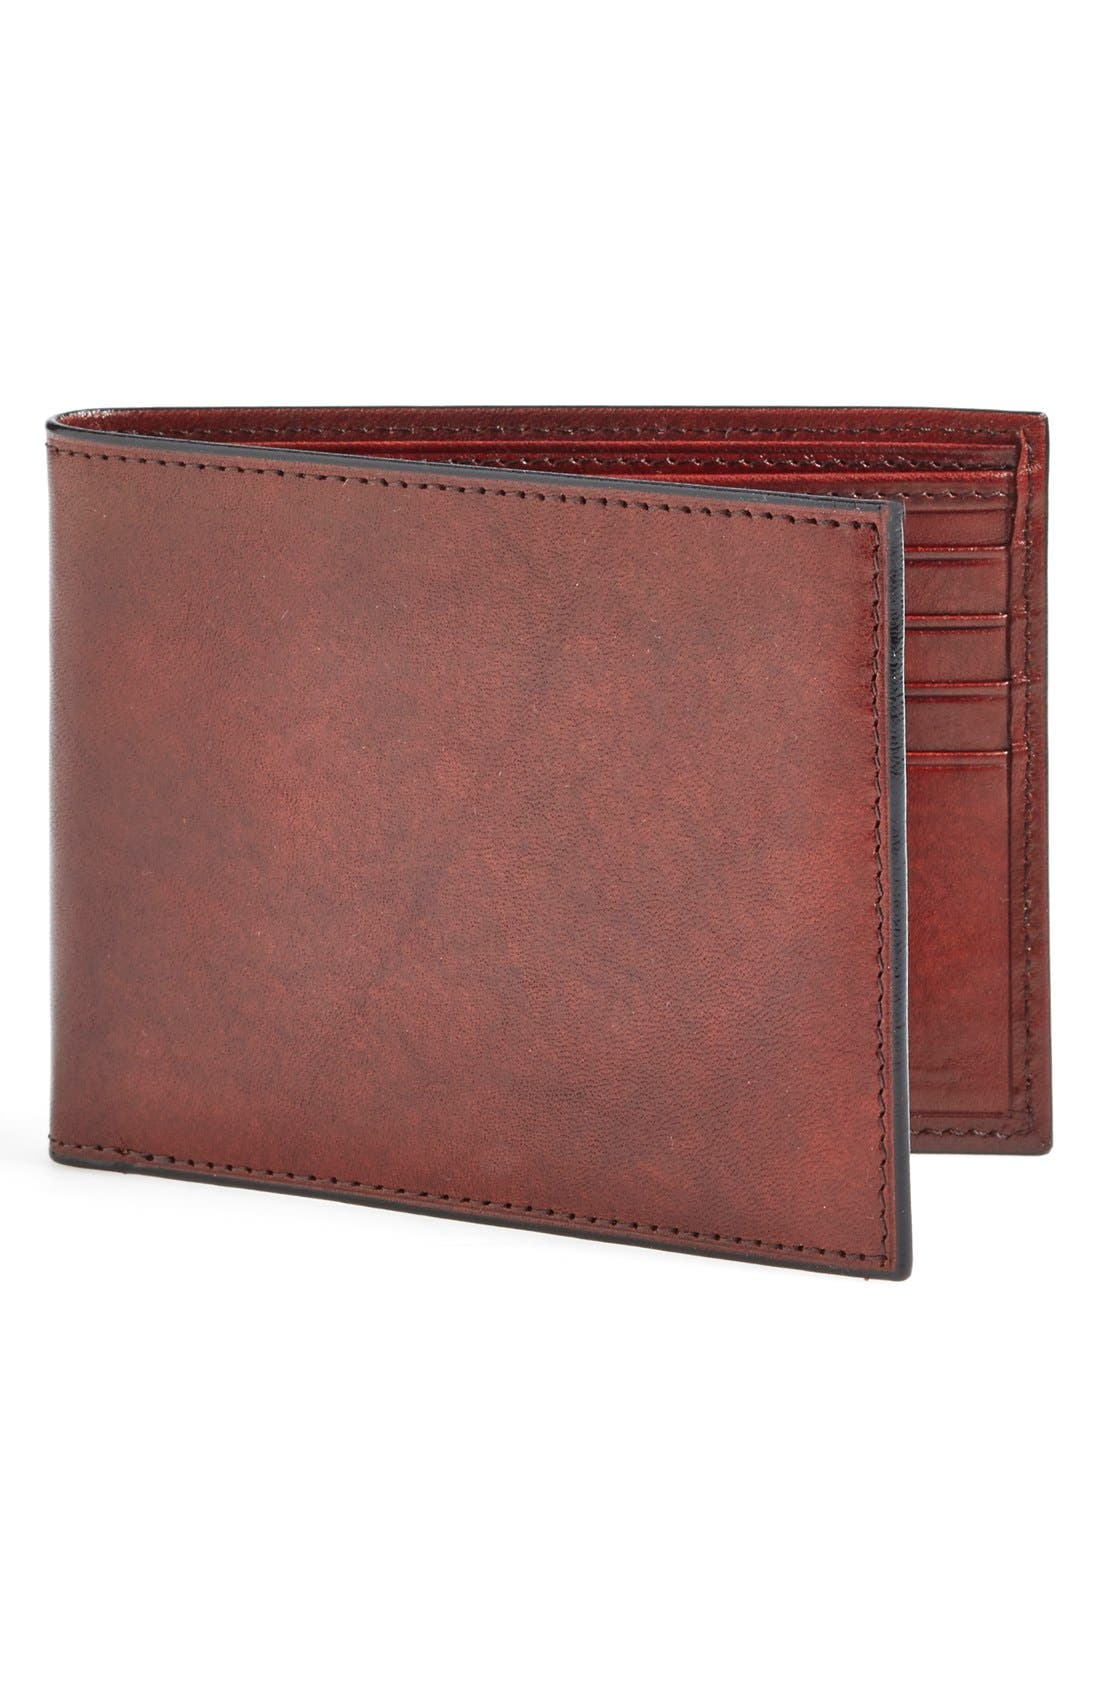 'Old Leather' Deluxe Wallet,                         Main,                         color, Dark Brown